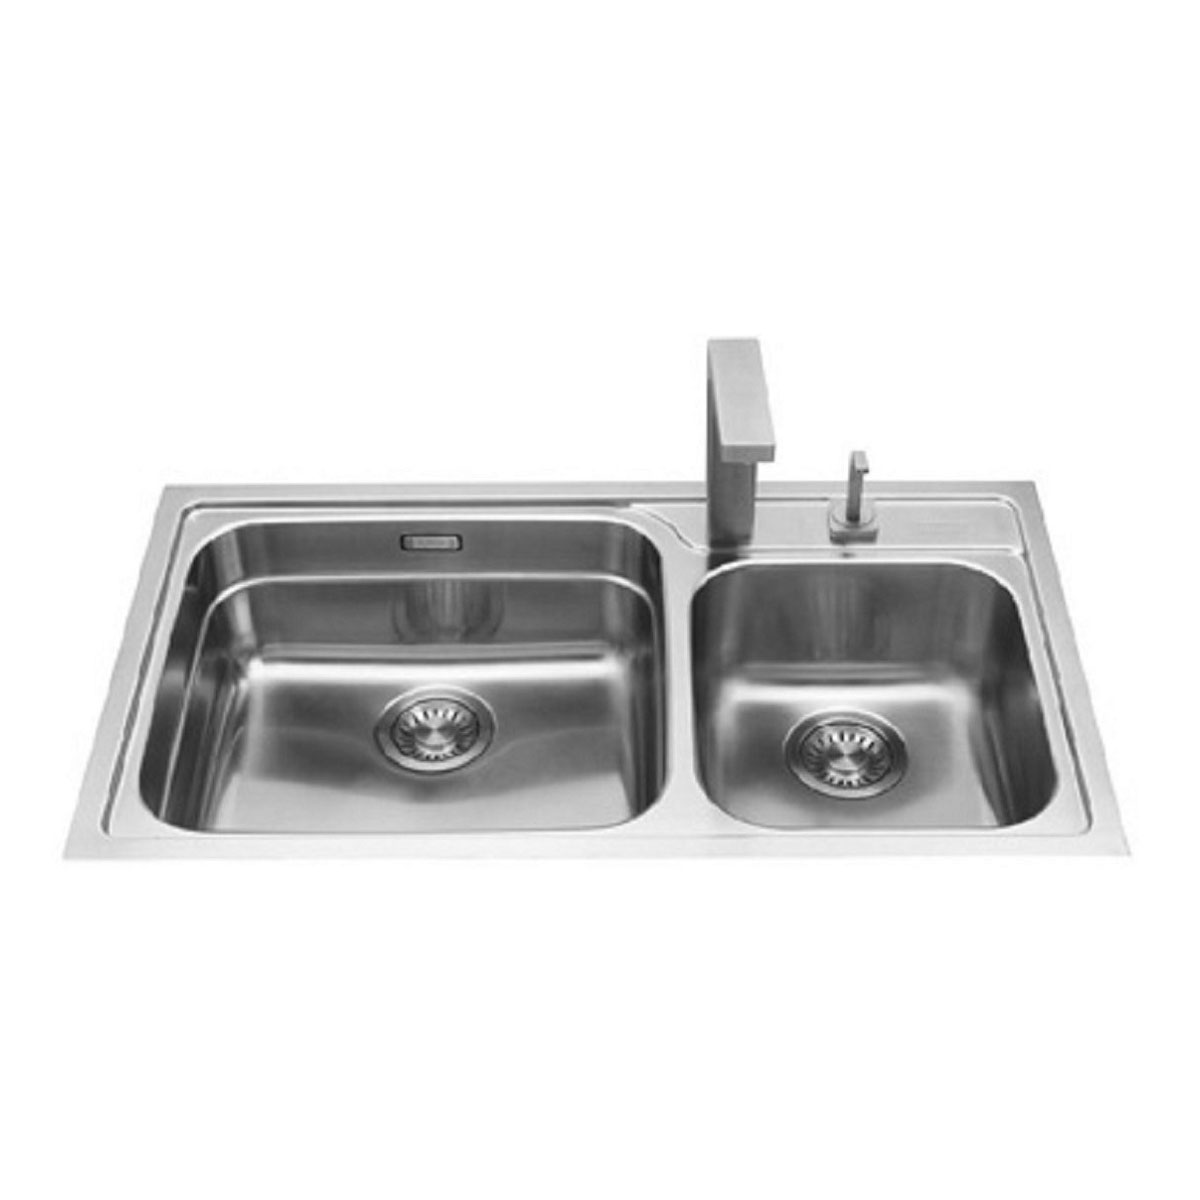 Franke Sinks Price List : Franke Sinks & Tubs Electro Seconds Appliances Online